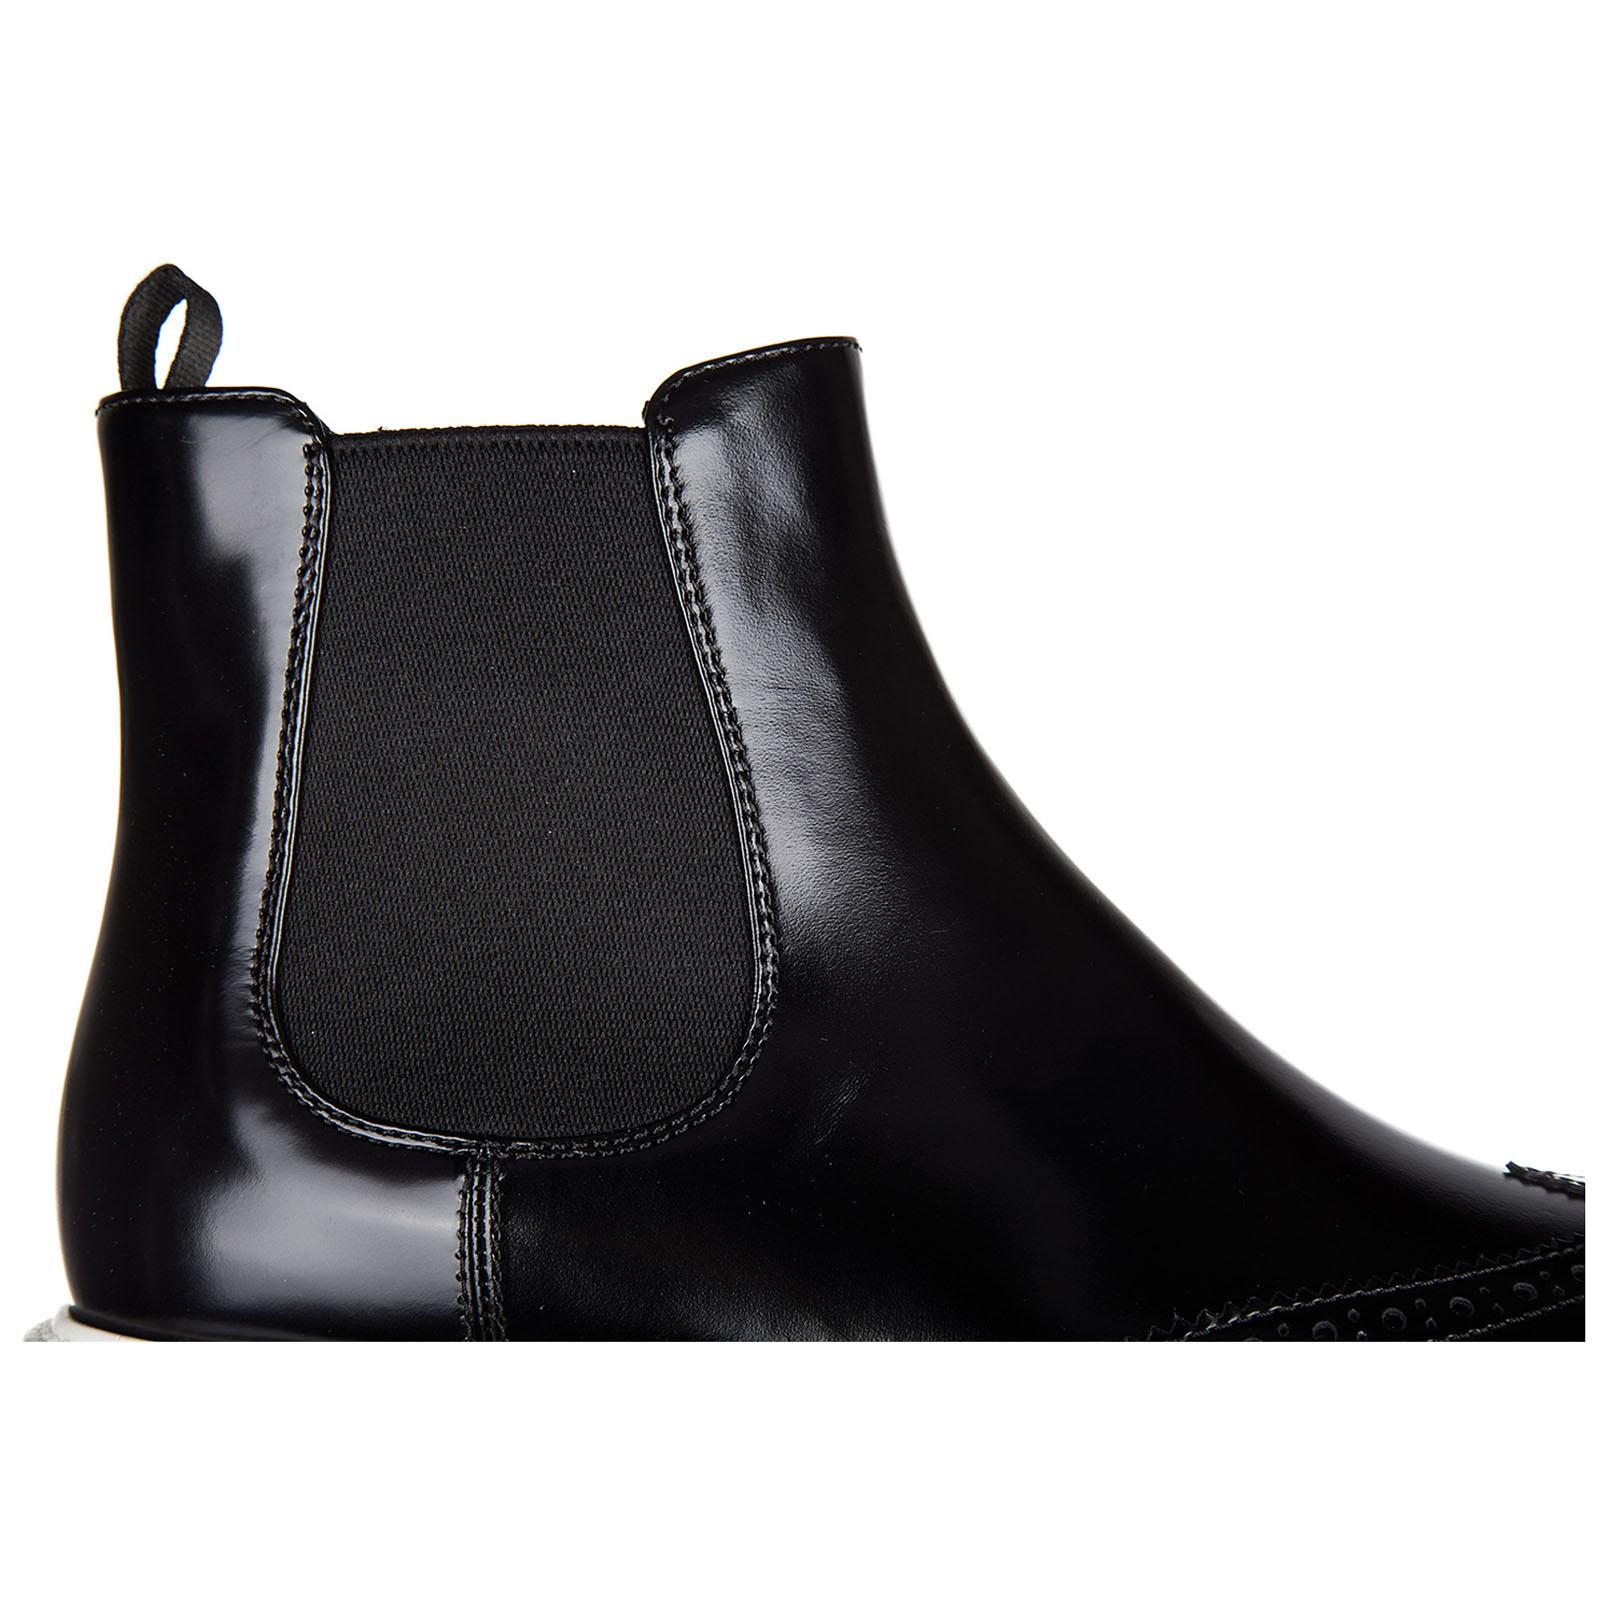 81aa77a6 Black Women's Leather Ankle Boots Booties Spazzolato